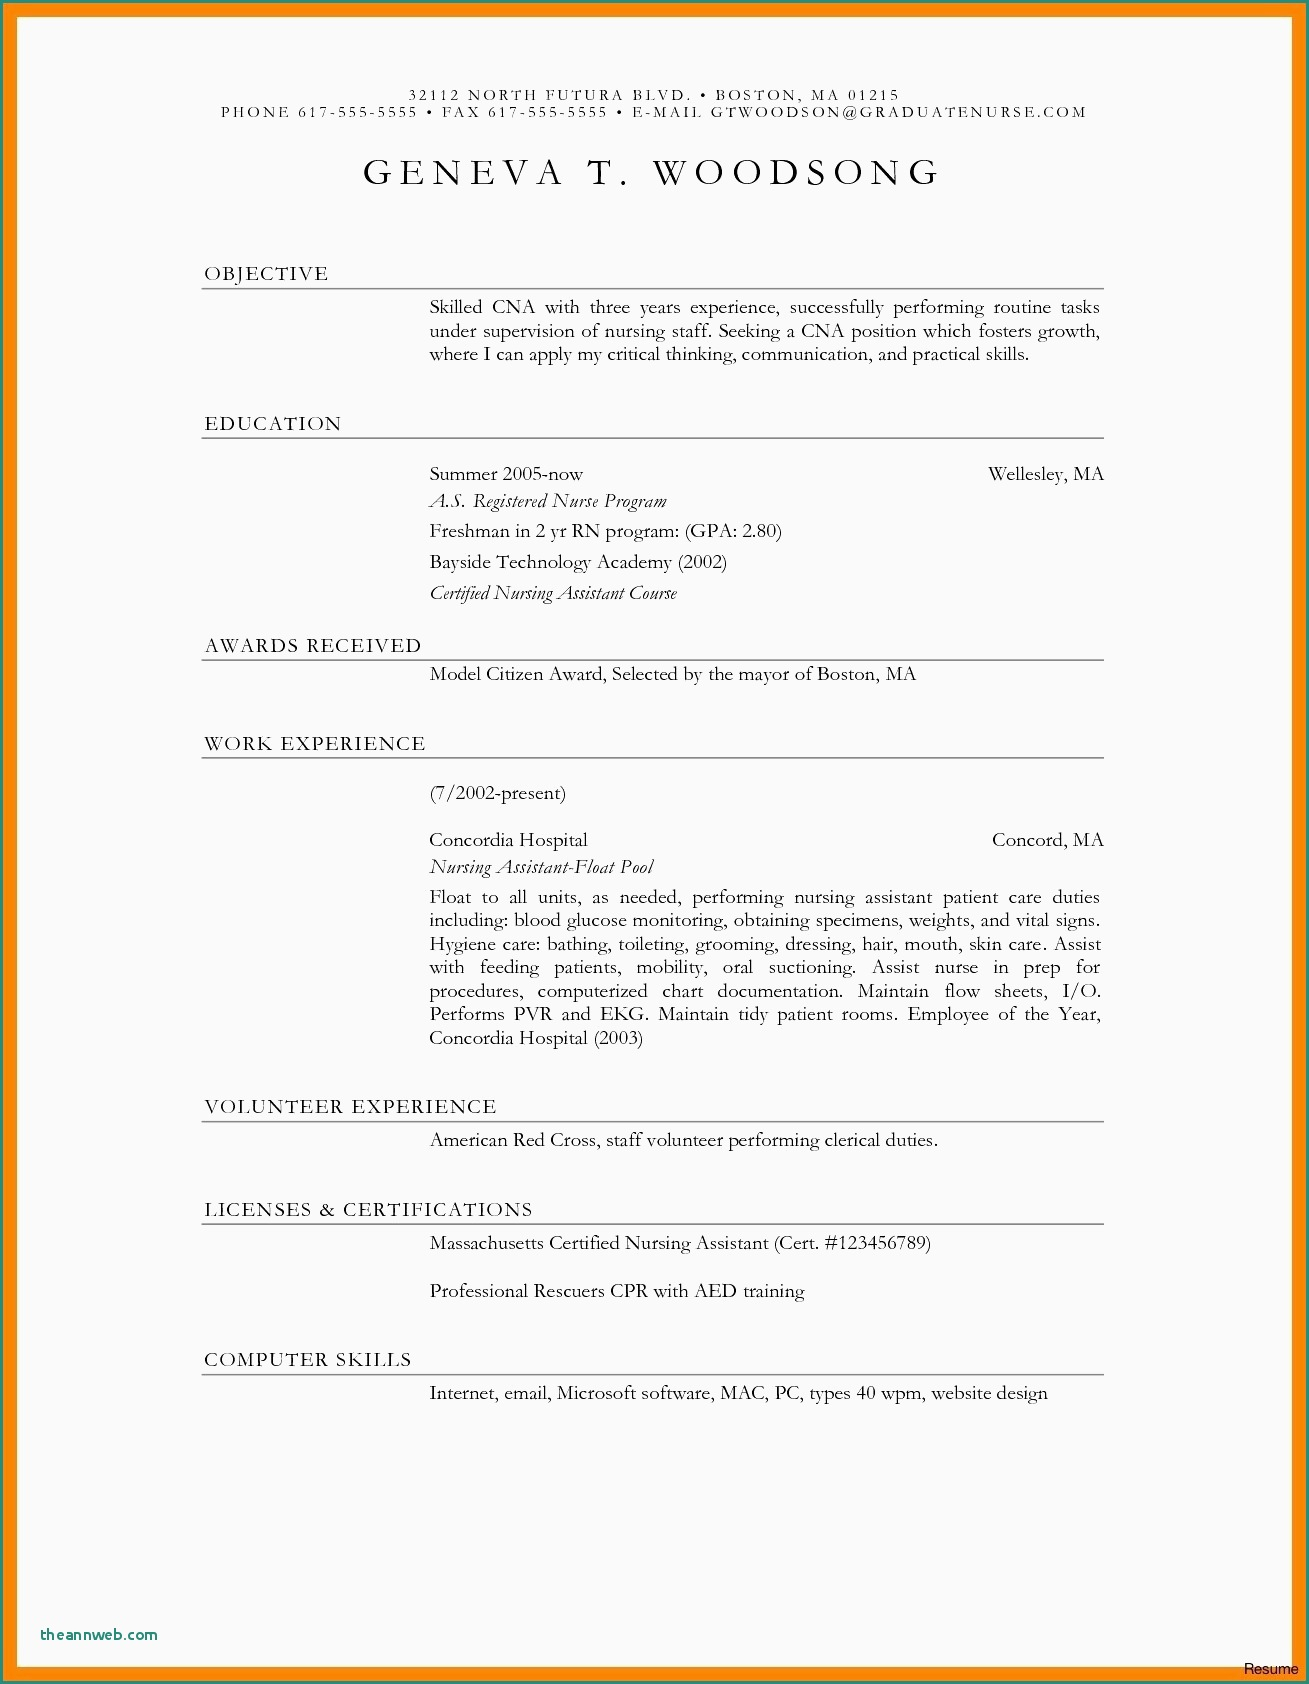 Resume Template Mac - Cover Letter Resume Sample Resume with Cover Letter Awesome Resume